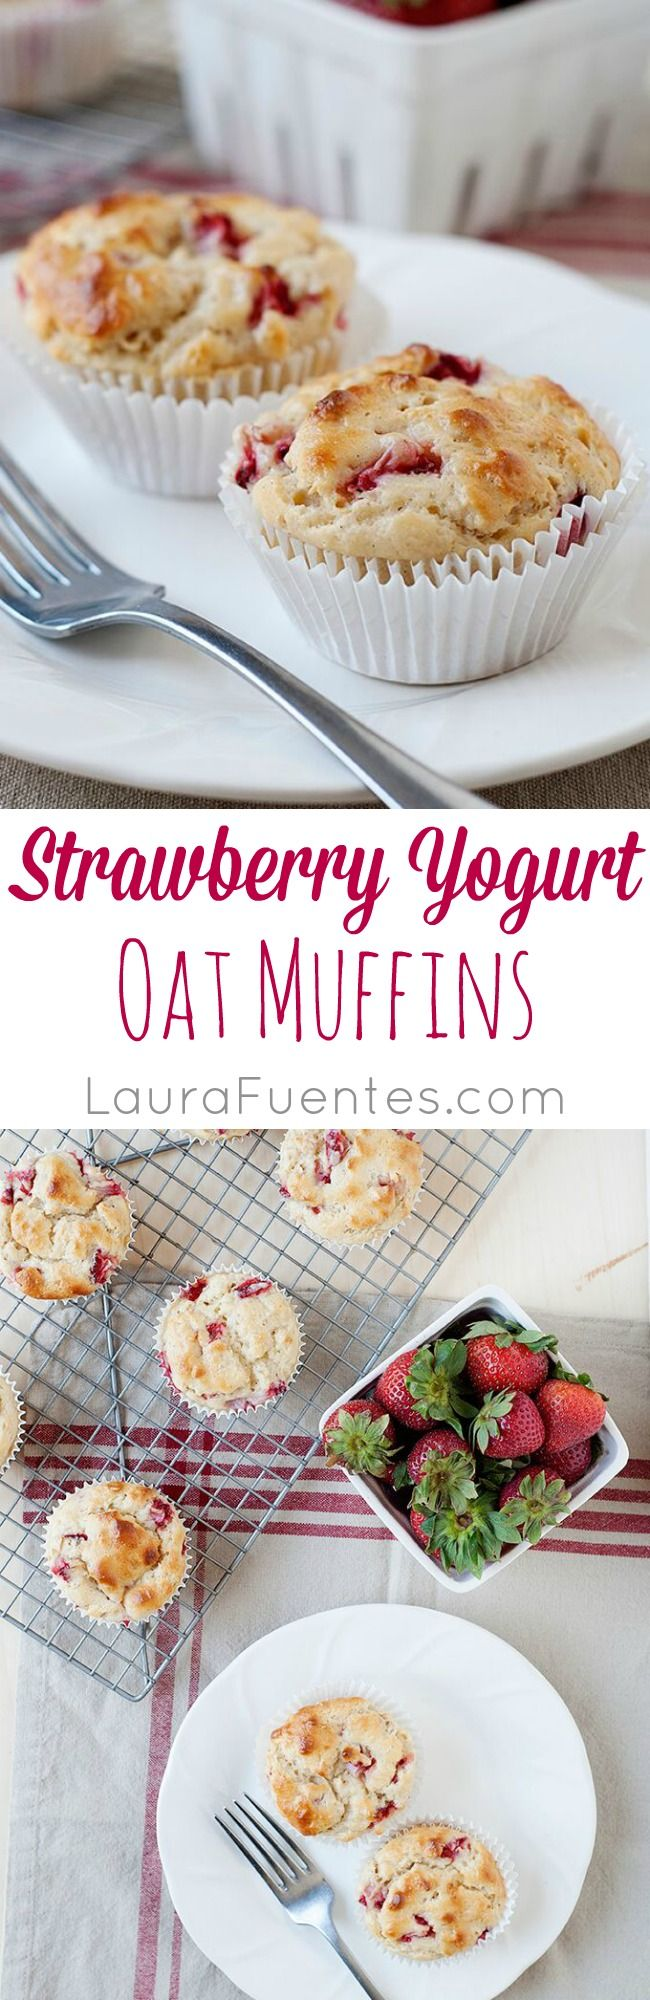 Strawberry Yogurt Oat Muffins: These muffins are great for breakfast or as a snack in your kids lunchbox. Filling and high in protein.